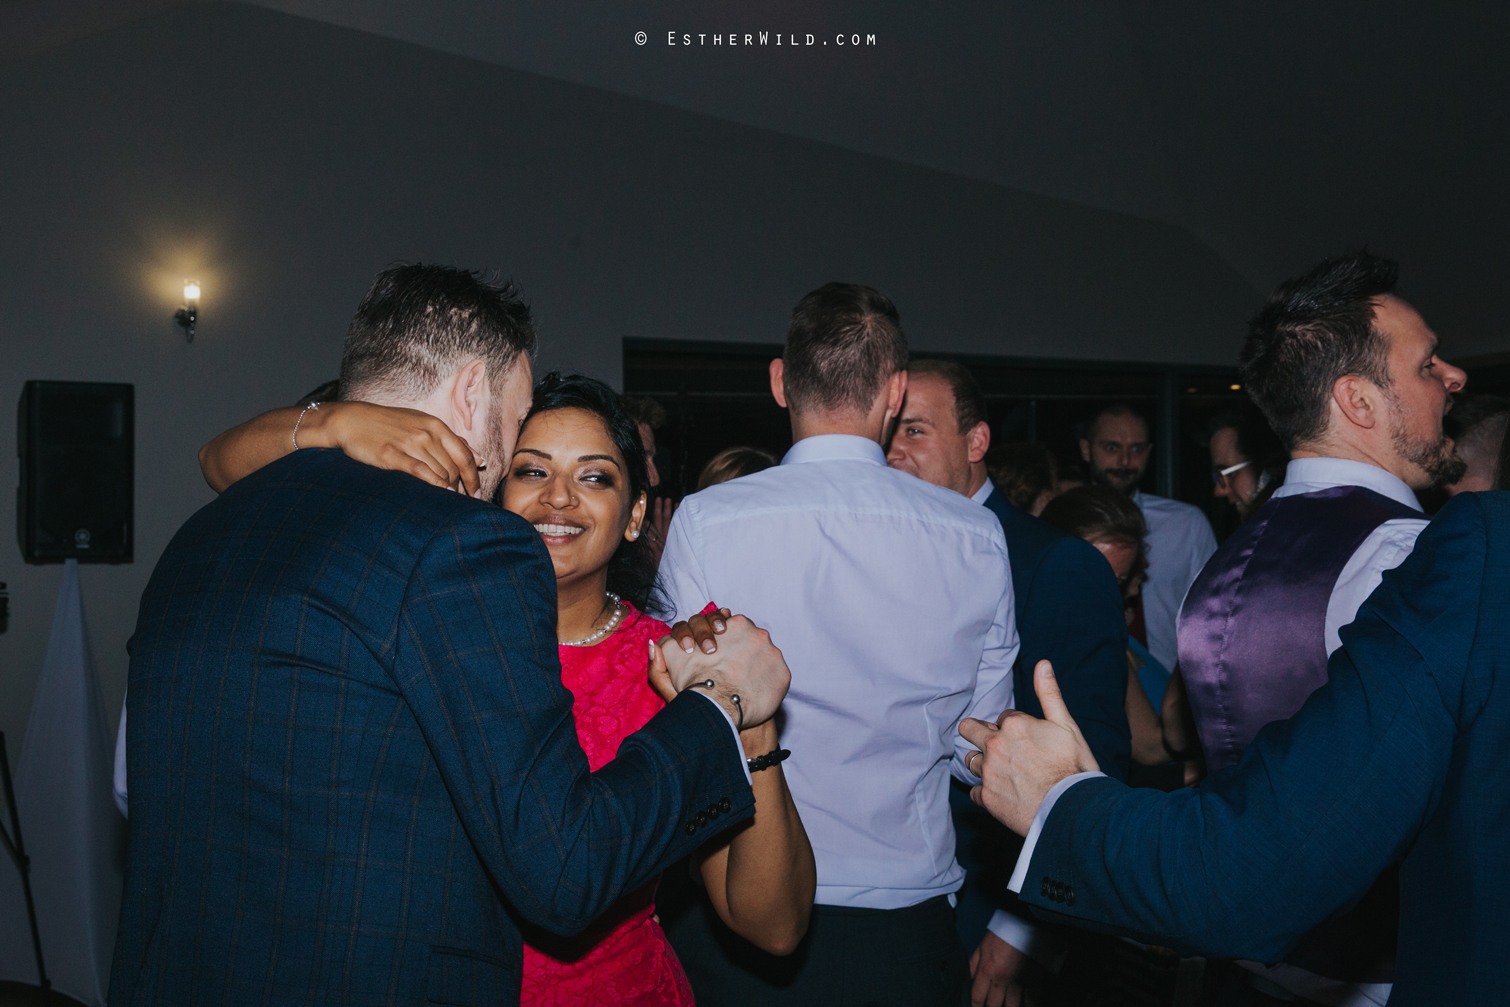 The_BoatHouse_Wedding_Venue_Ormesby_Norfolk_Broads_Boat_Wedding_Photography_Esther_Wild_Photographer_IMG_3644.jpg